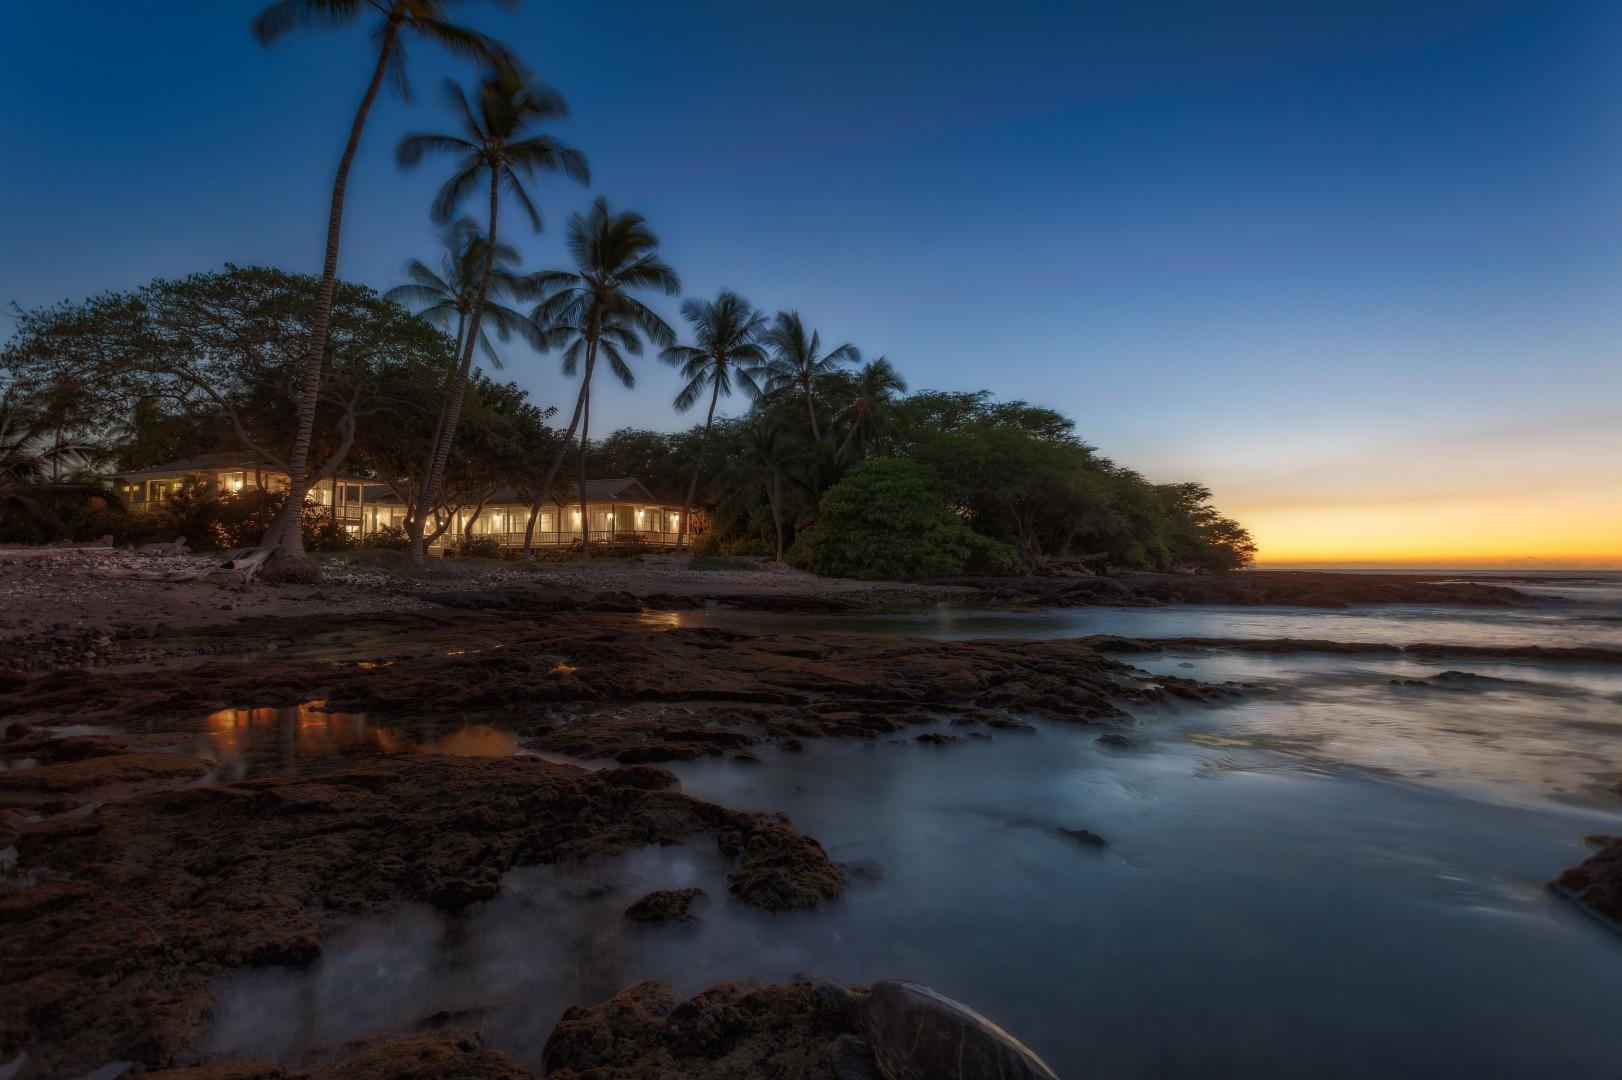 Sunset at Puako 74 is Sure to be a Magical and Memorable Time!